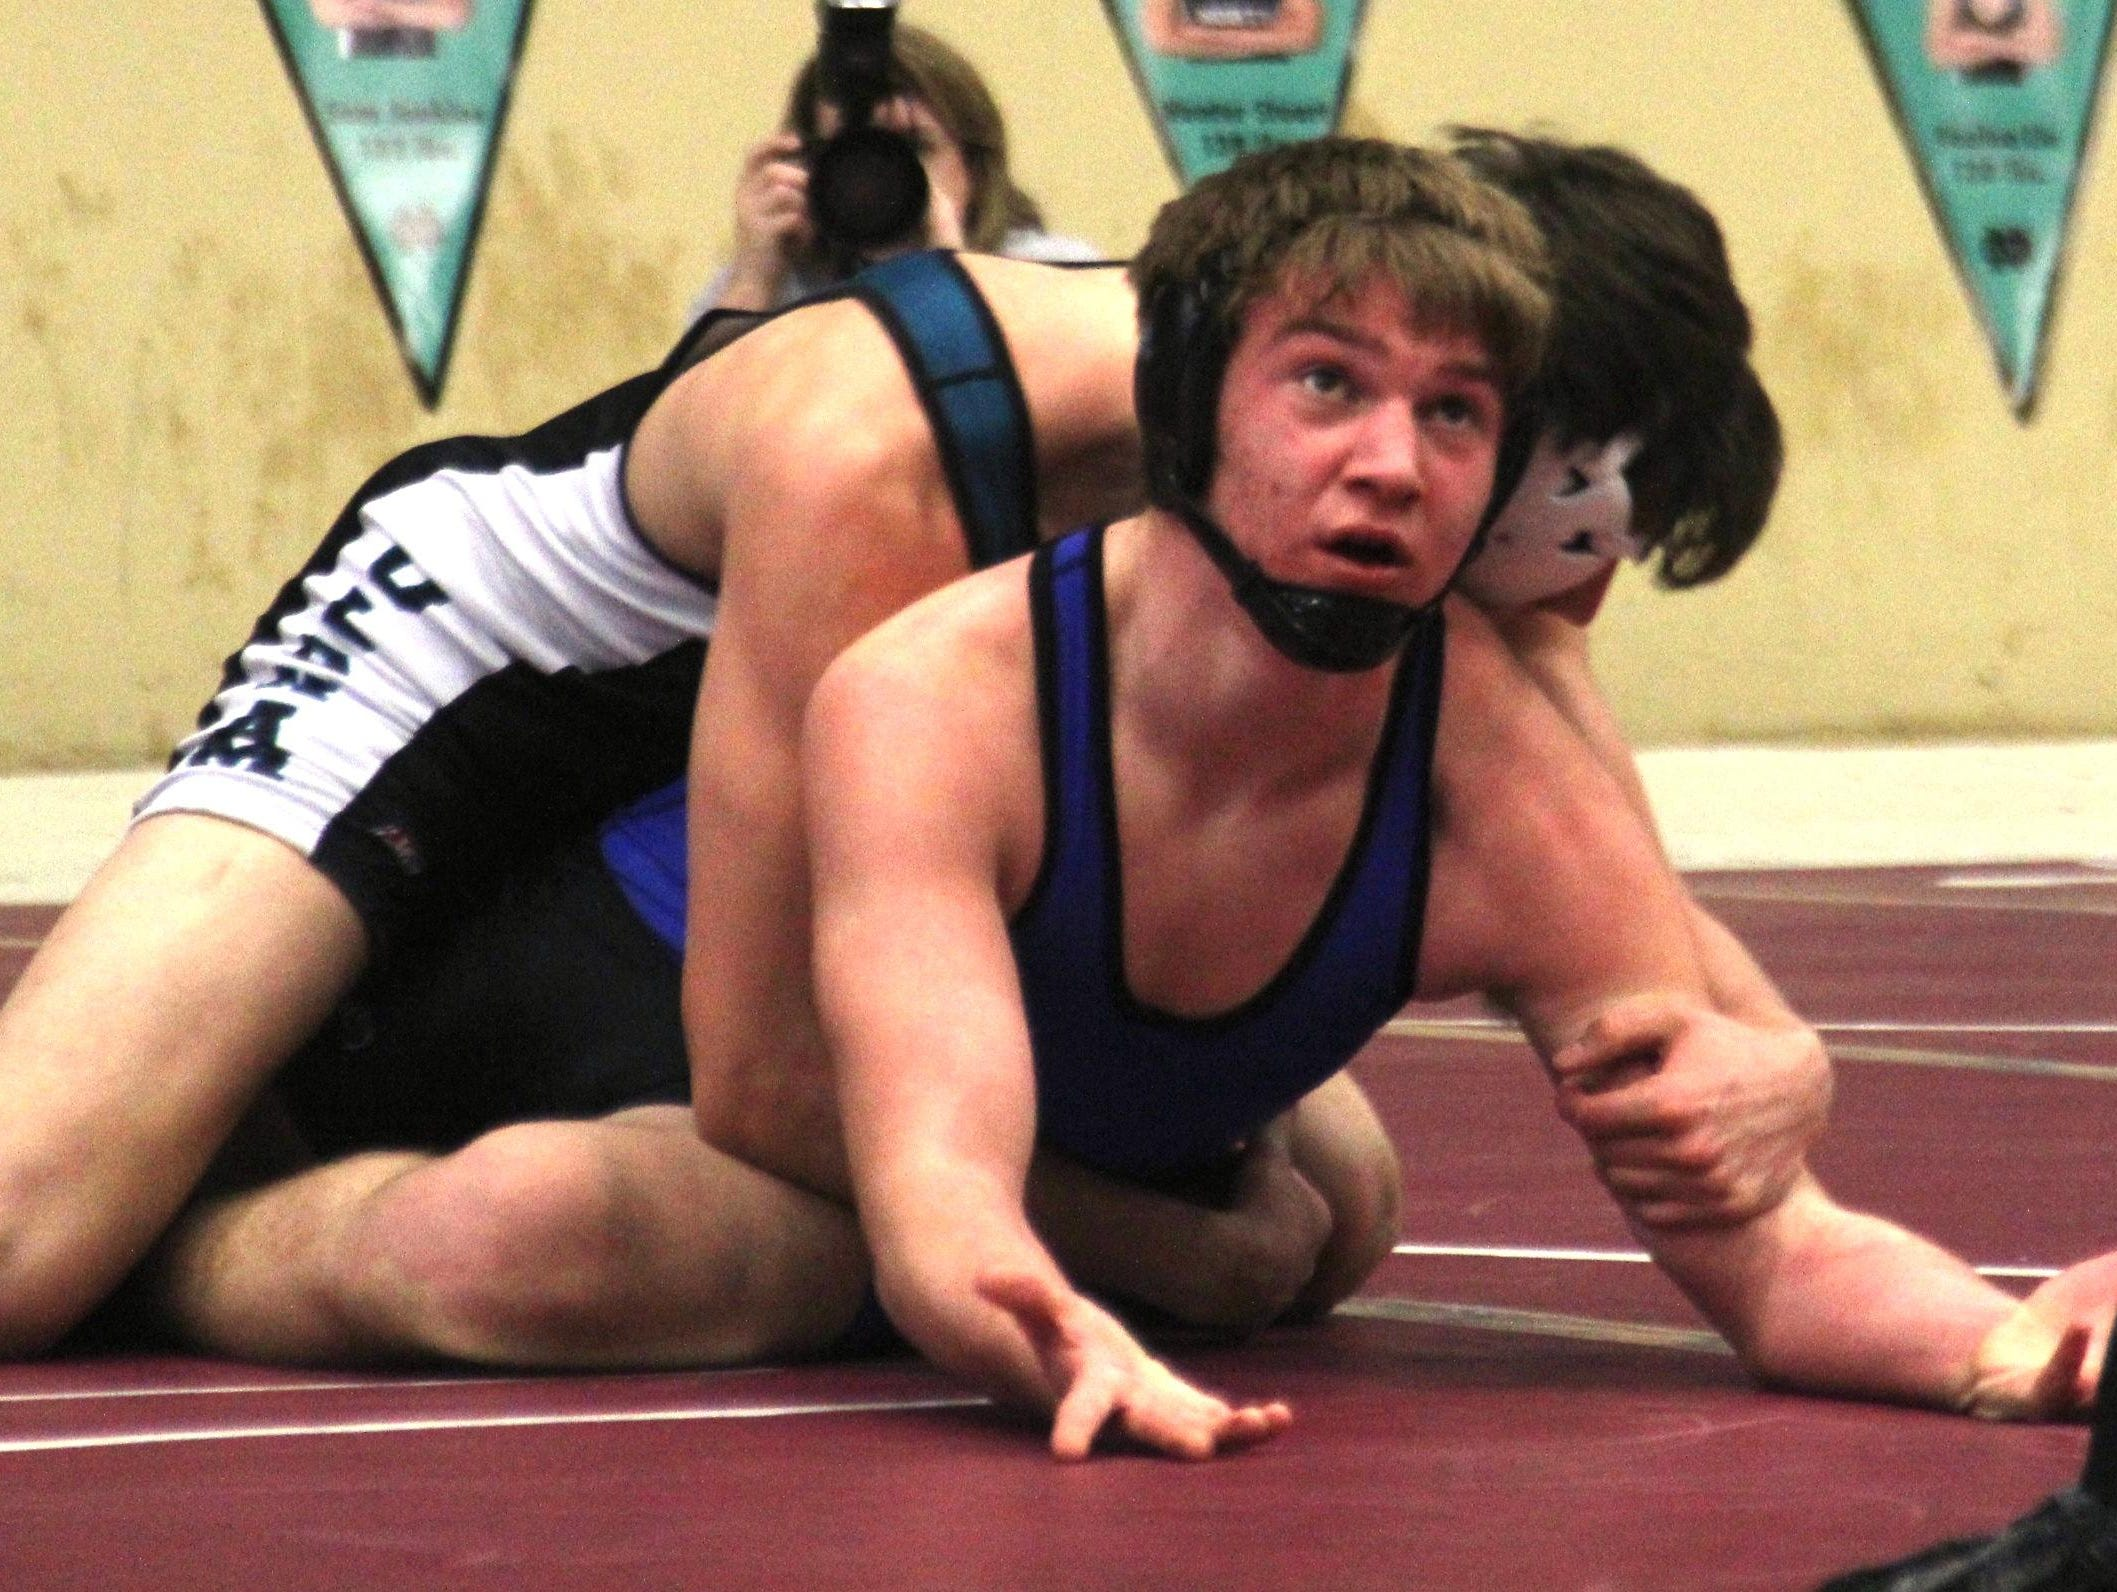 Scott's Cody Roland is ranked No. 17 at 152 pounds by kentuckywrestling.com.